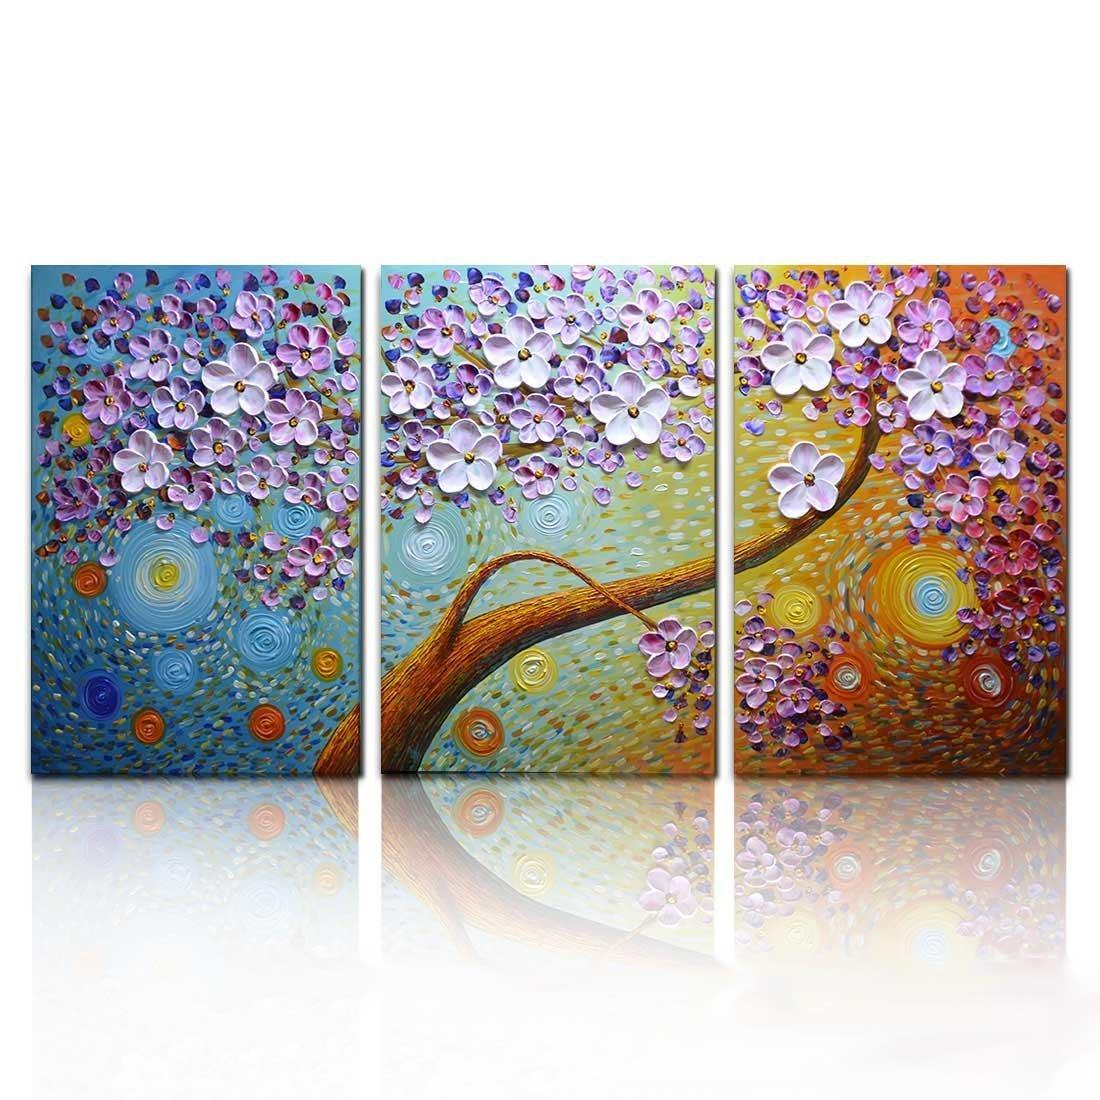 2018 100 hand painted 3d floral paintings on canvas horizontal large wall art for living room bedroom 3 panels artwork from sojo 159 18 dhgate com